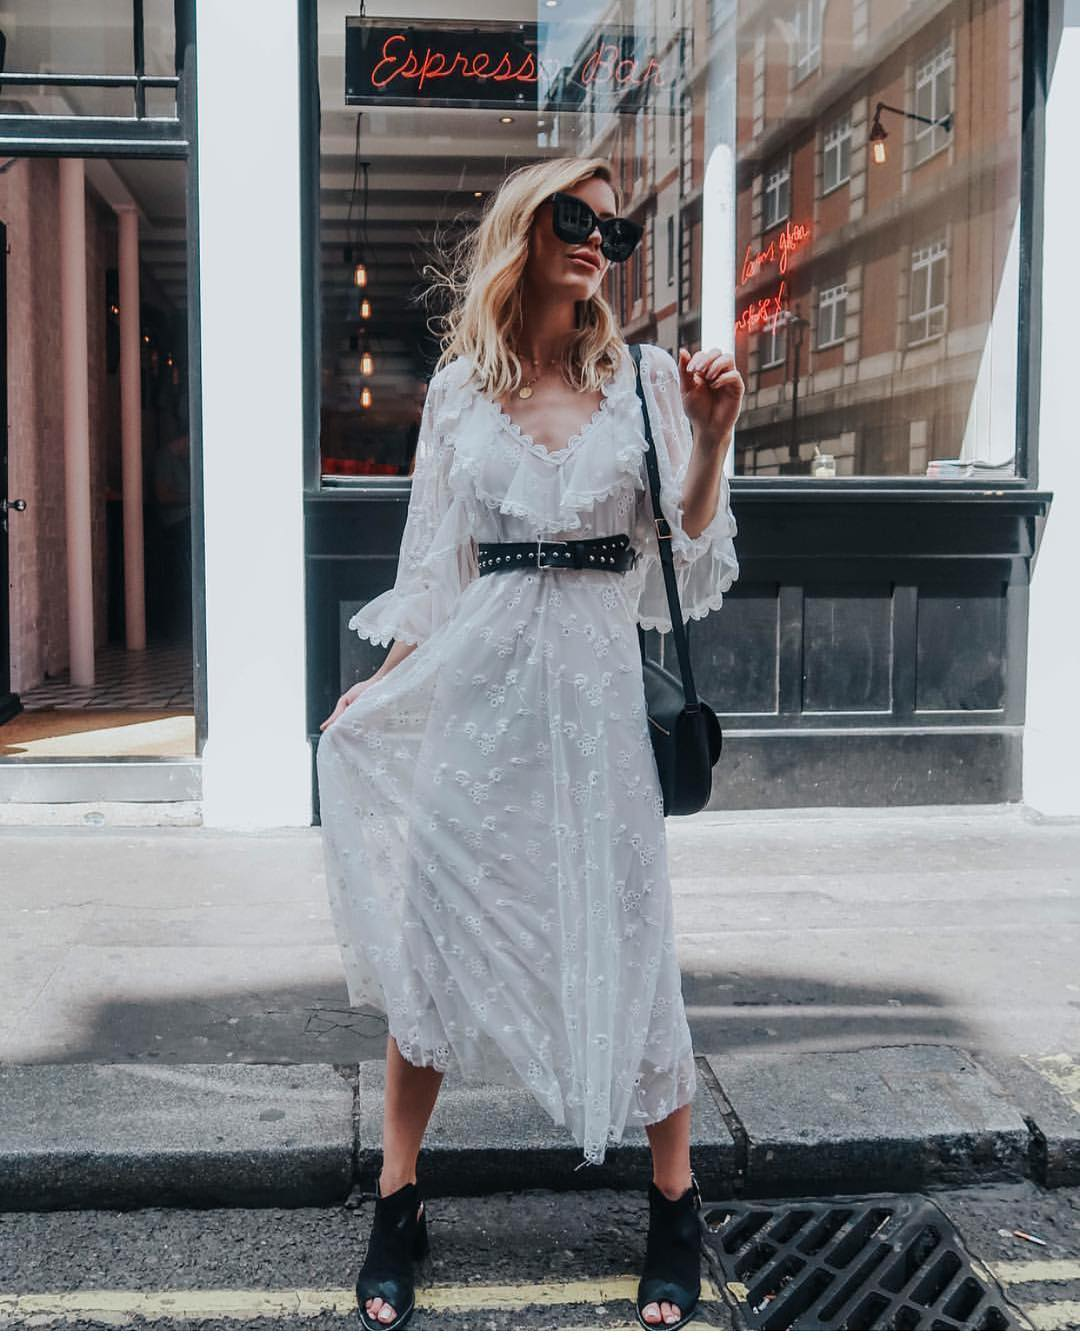 White Boho Peasant Semi-Sheer Long Dress For Summer 2020